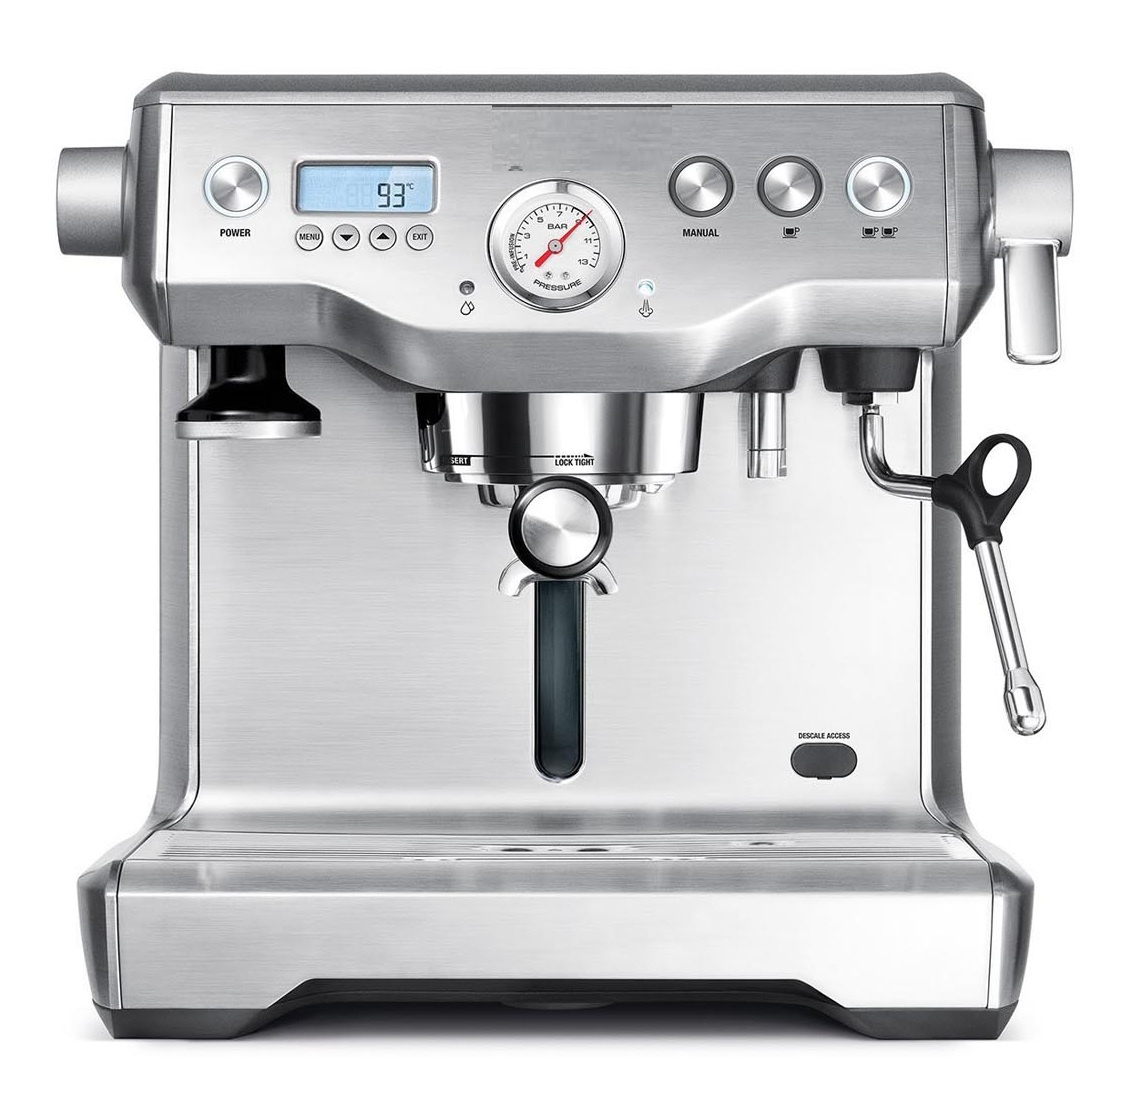 Global Manual and Automatic Coffee Machines Market